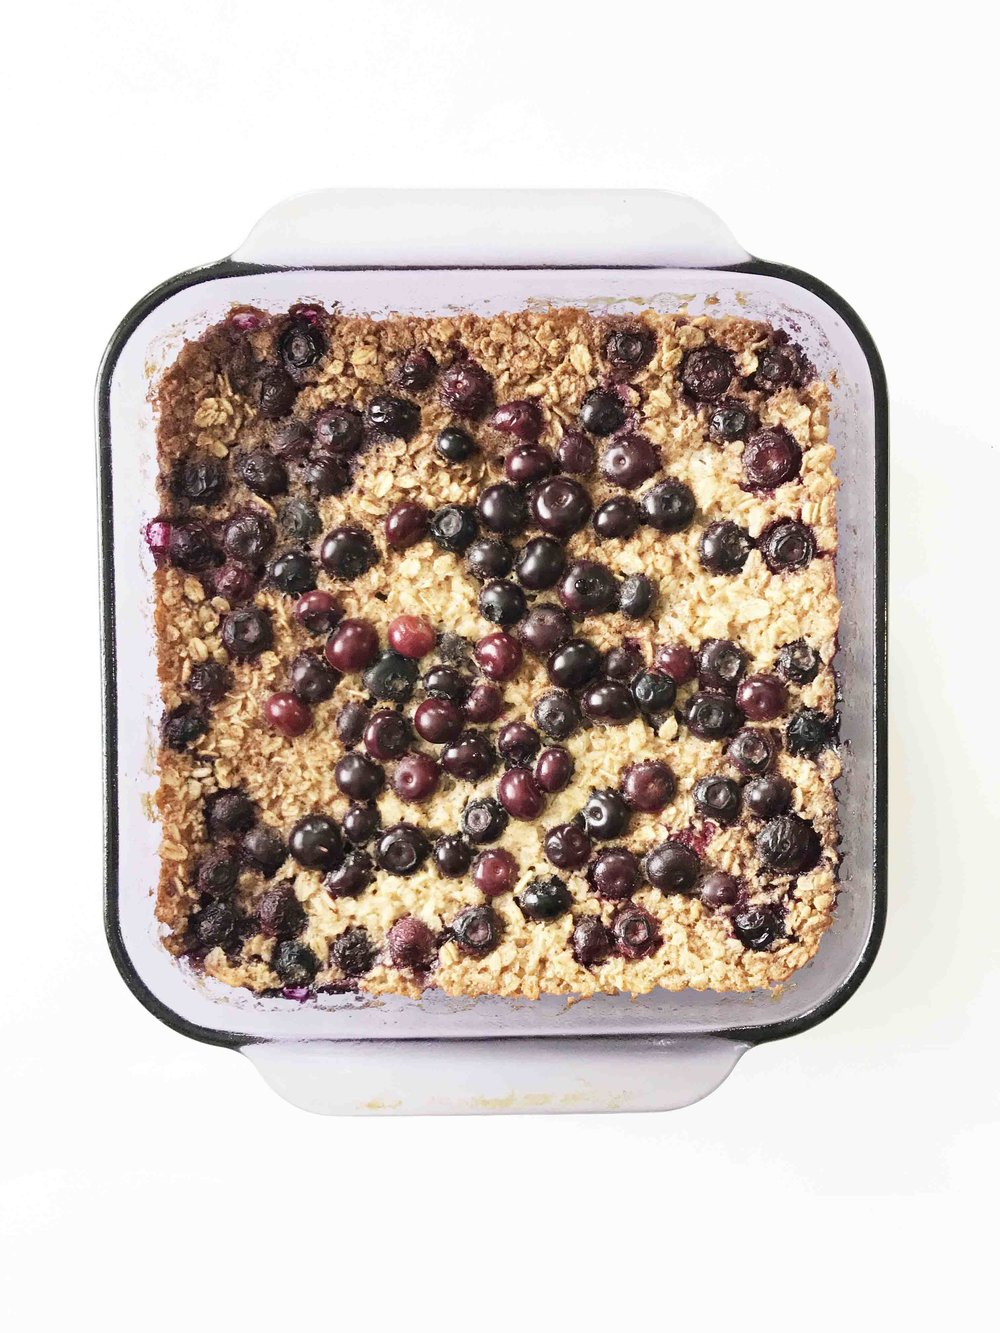 baked-blueberry-oatmeal6.jpg